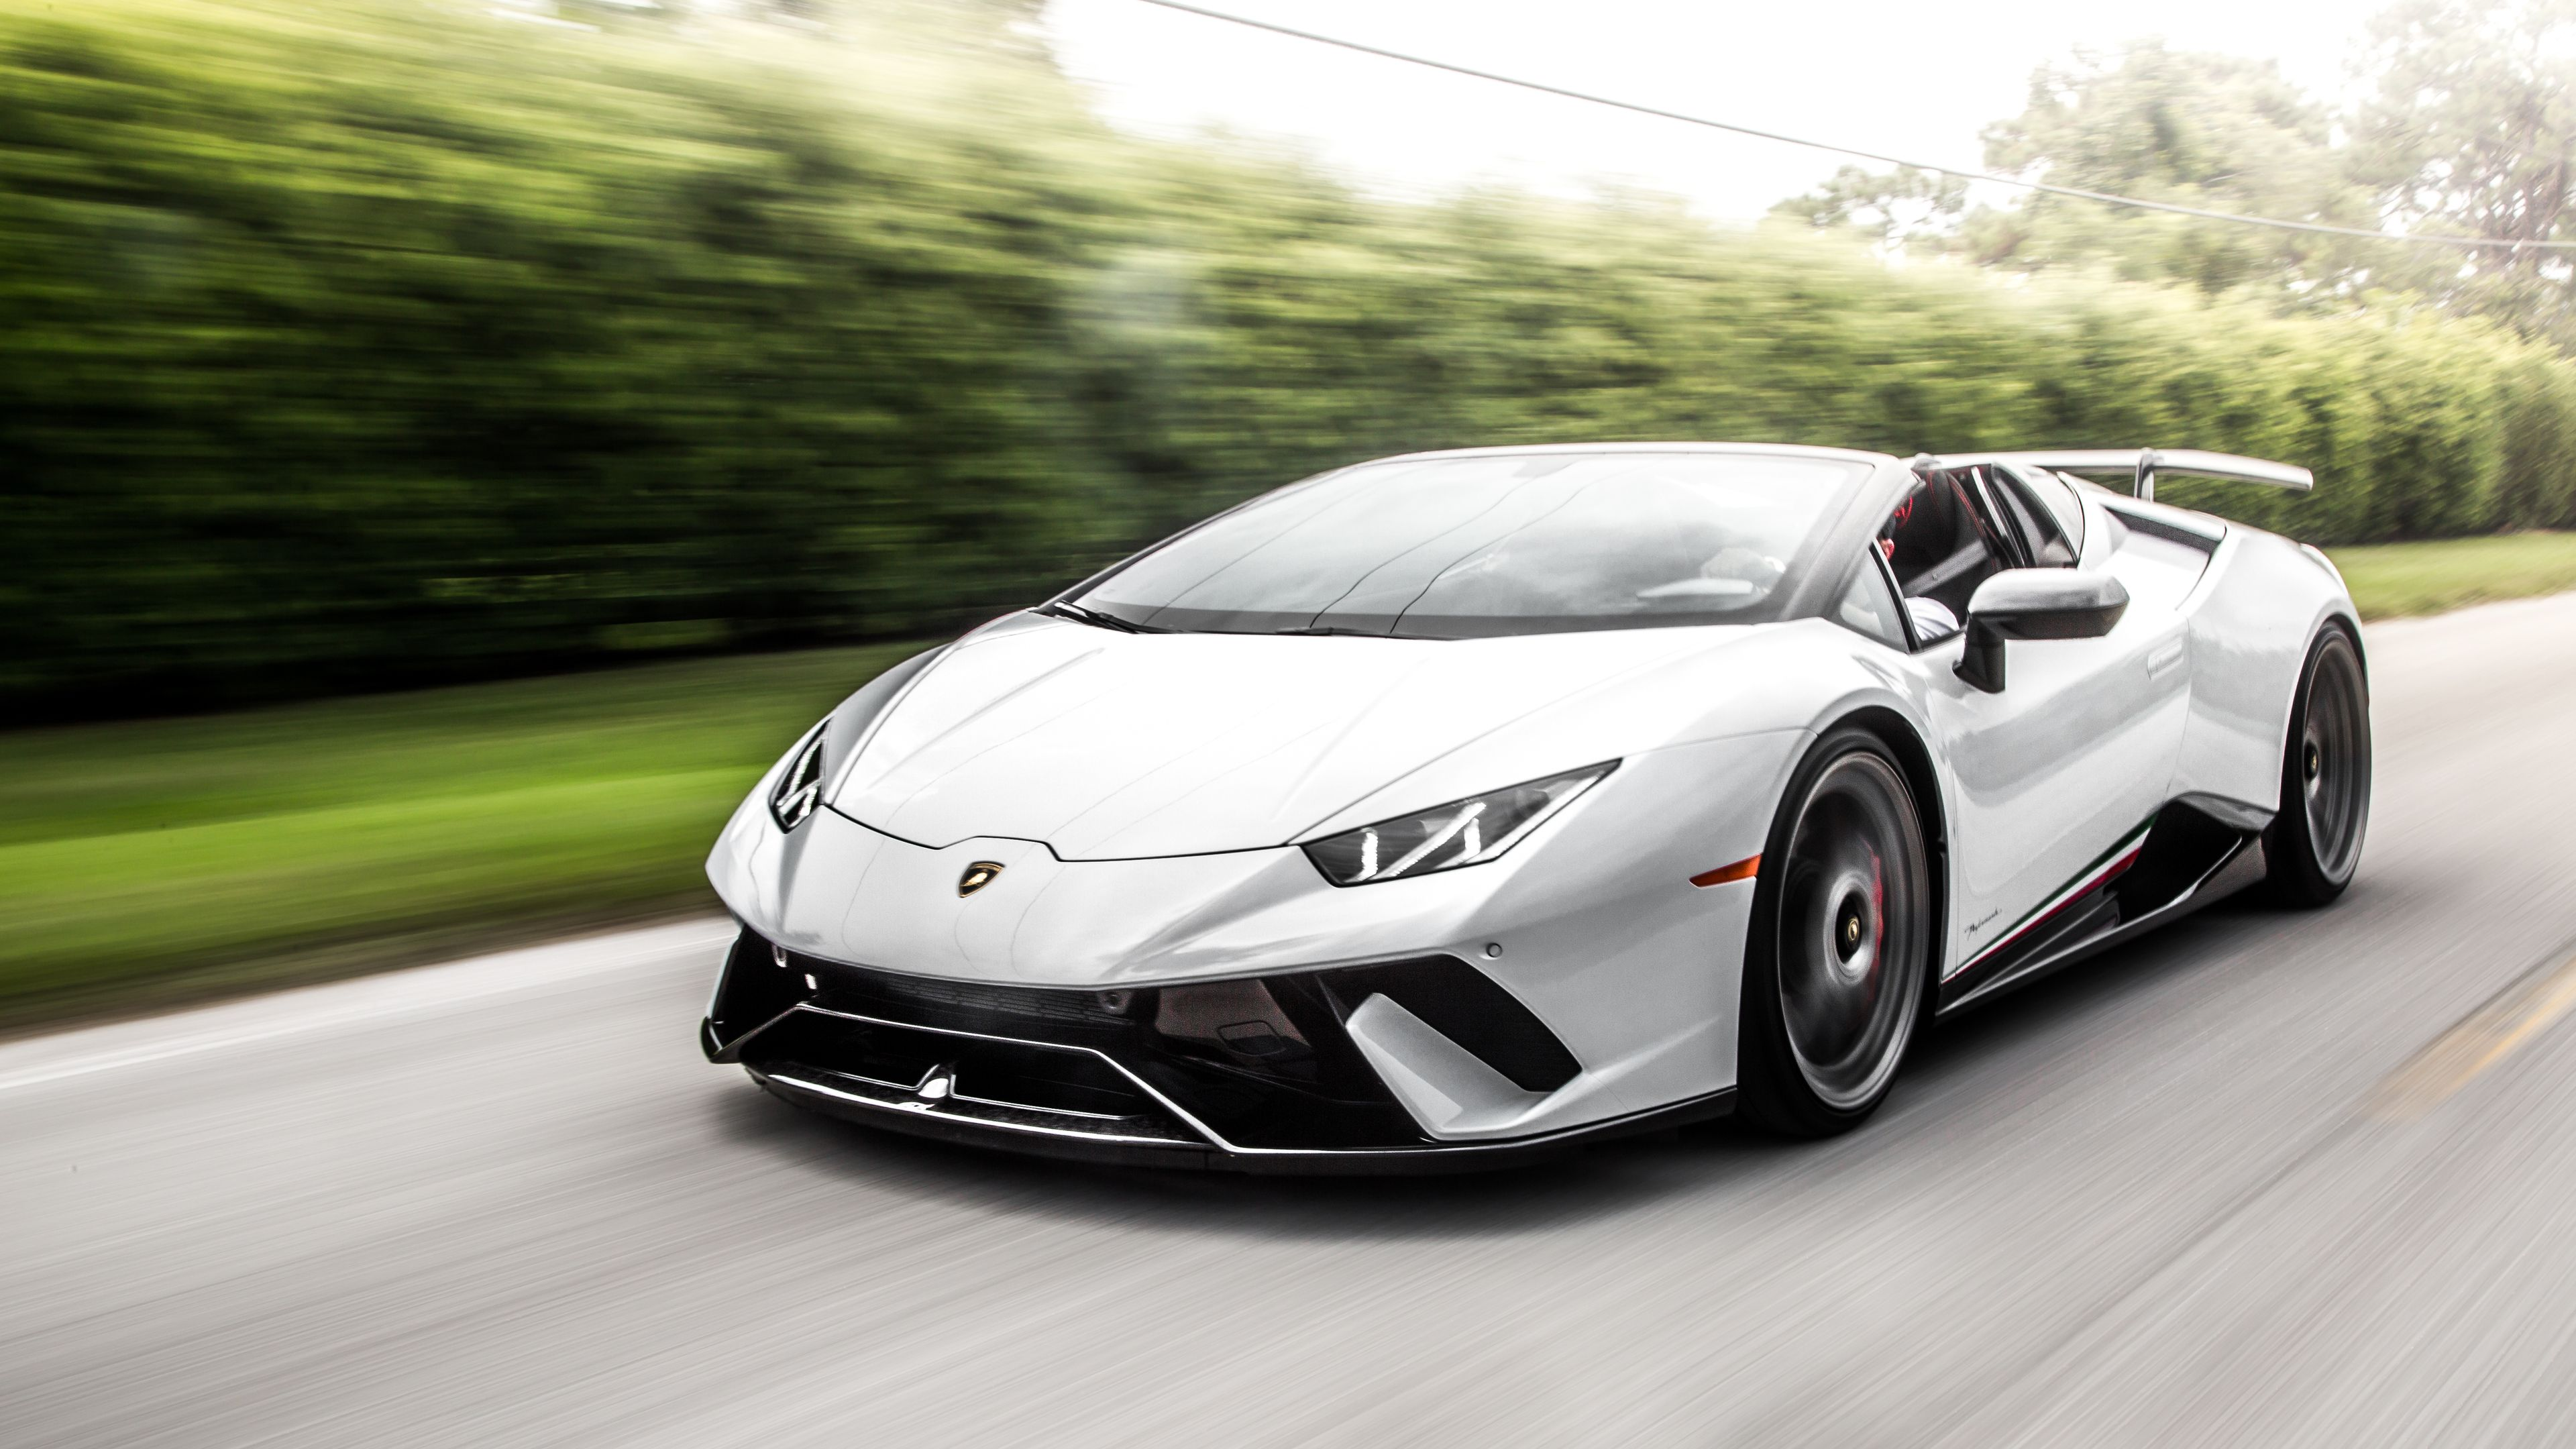 White Lamborghini Huracan 4k Lamborghini Wallpapers Lamborghini Huracan Wallpapers Hd Wallpapers Cars W White Lamborghini Lamborghini Huracan Car Wallpapers